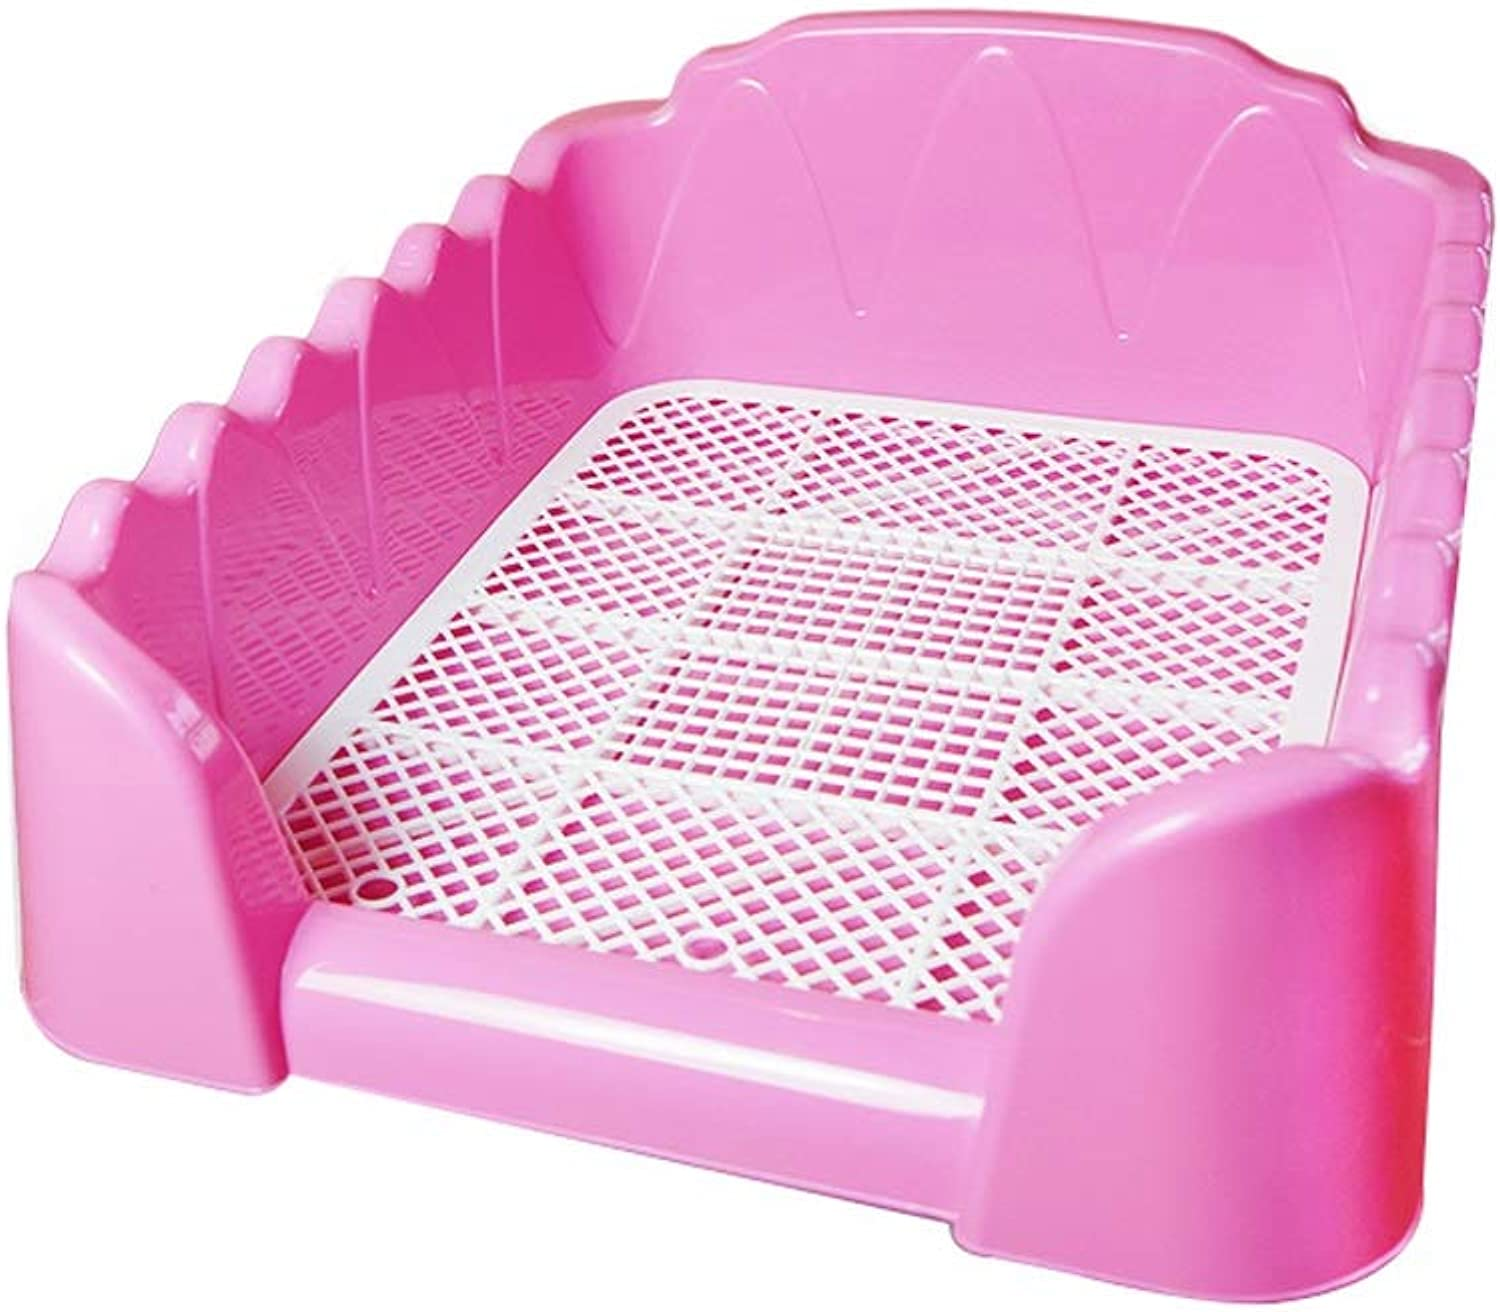 FUTER Pet Dog Toilet Small Dog Dog Supplies Urinal Basin Easy To Clean Pull The Potty Pet Supplies (color   Pink)